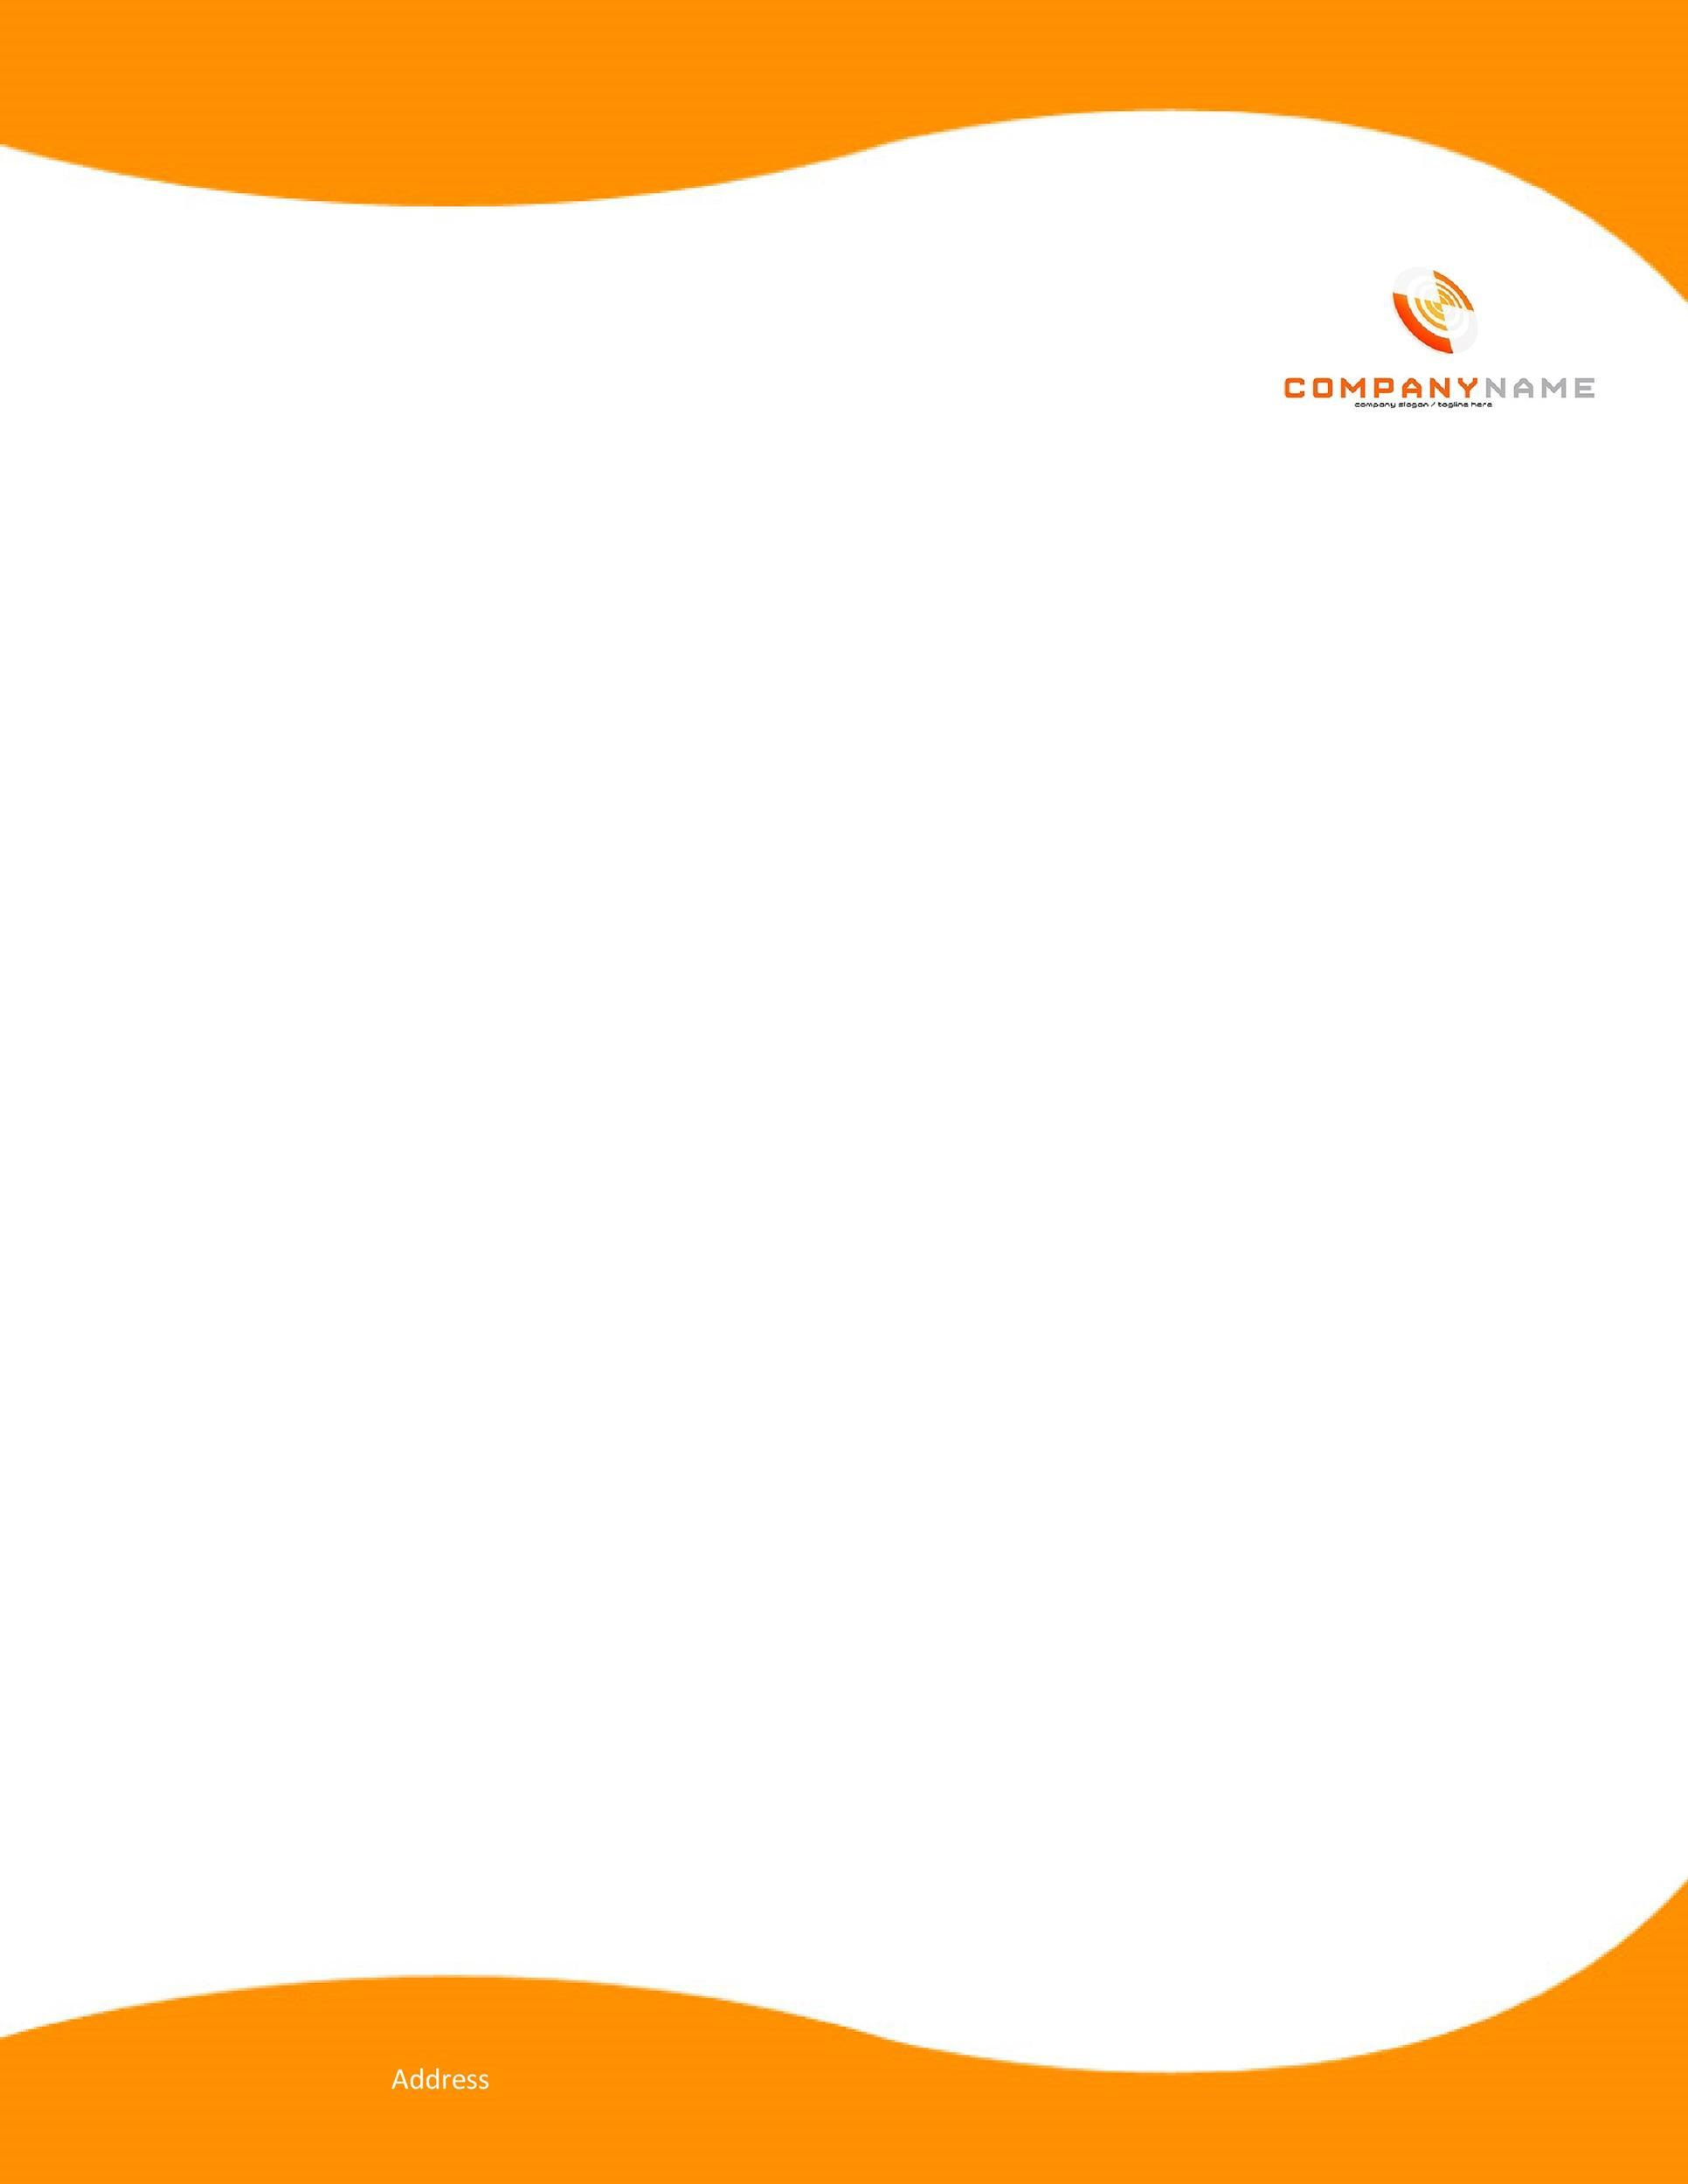 007 Fantastic Letterhead Example Free Download Design  Advocate Format Hospital In Word PdfFull